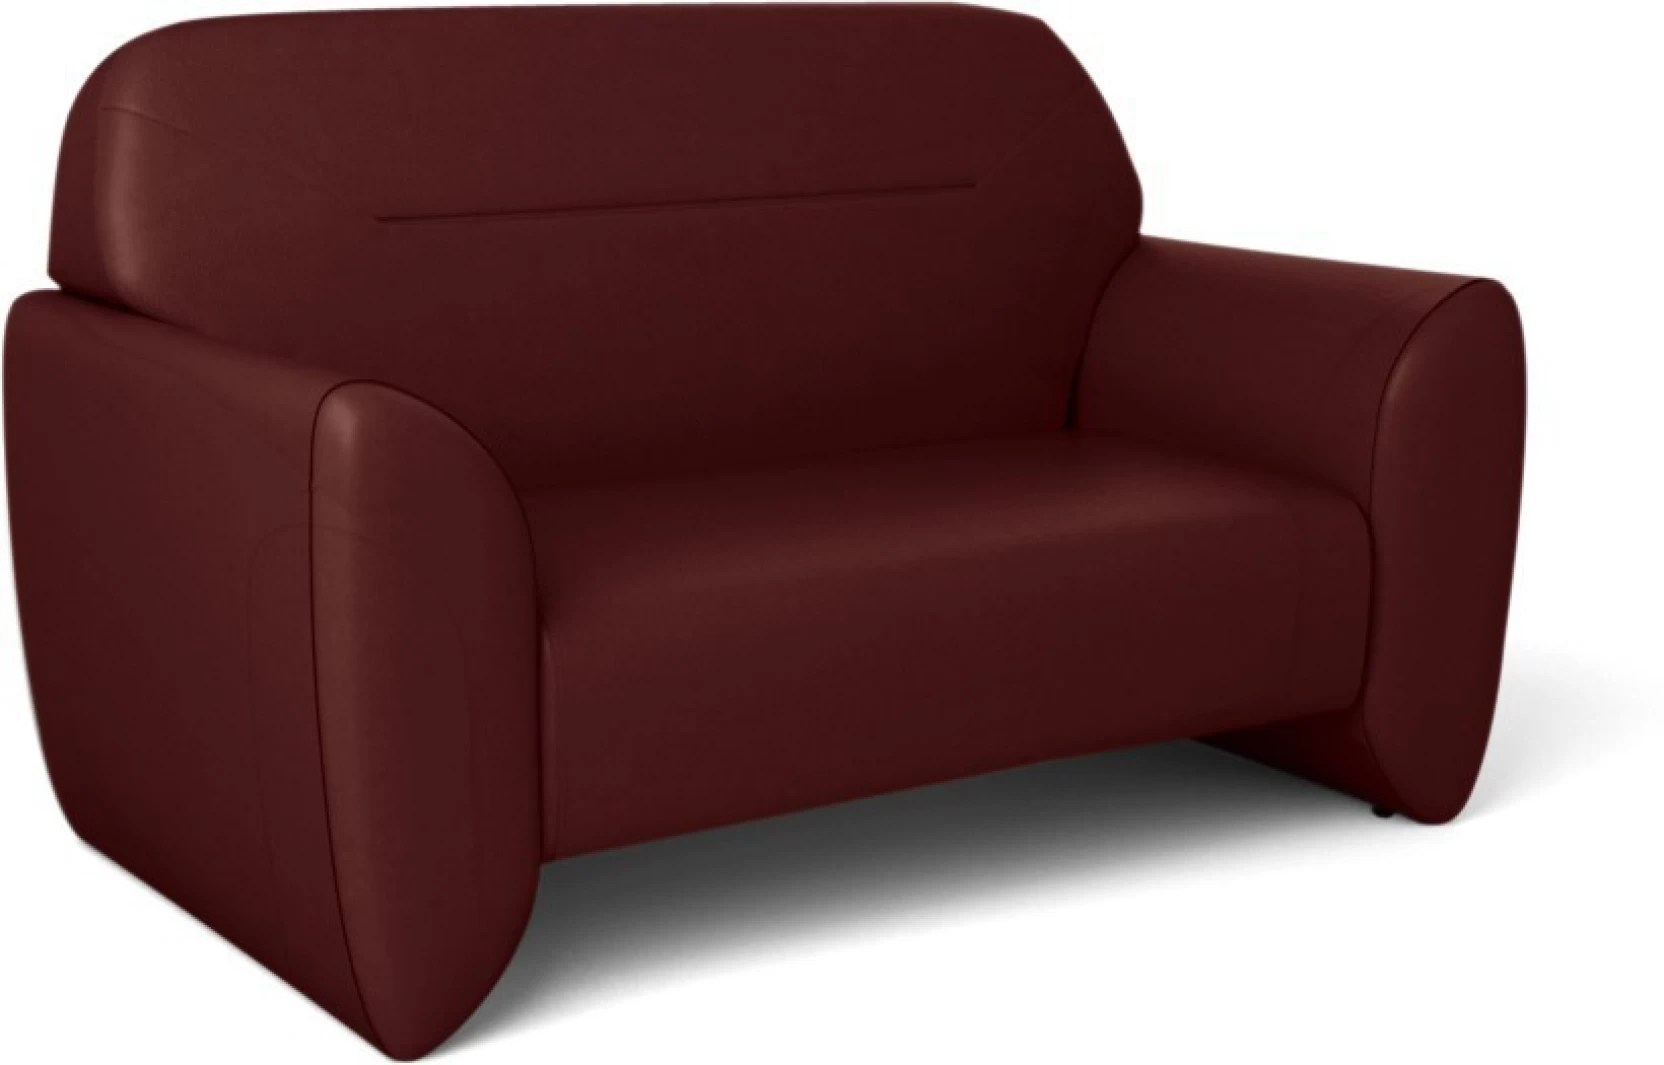 Interio Sofa Marilyn Godrej Interio Baymax Leatherette 2 Seater Sofa Price In India Buy